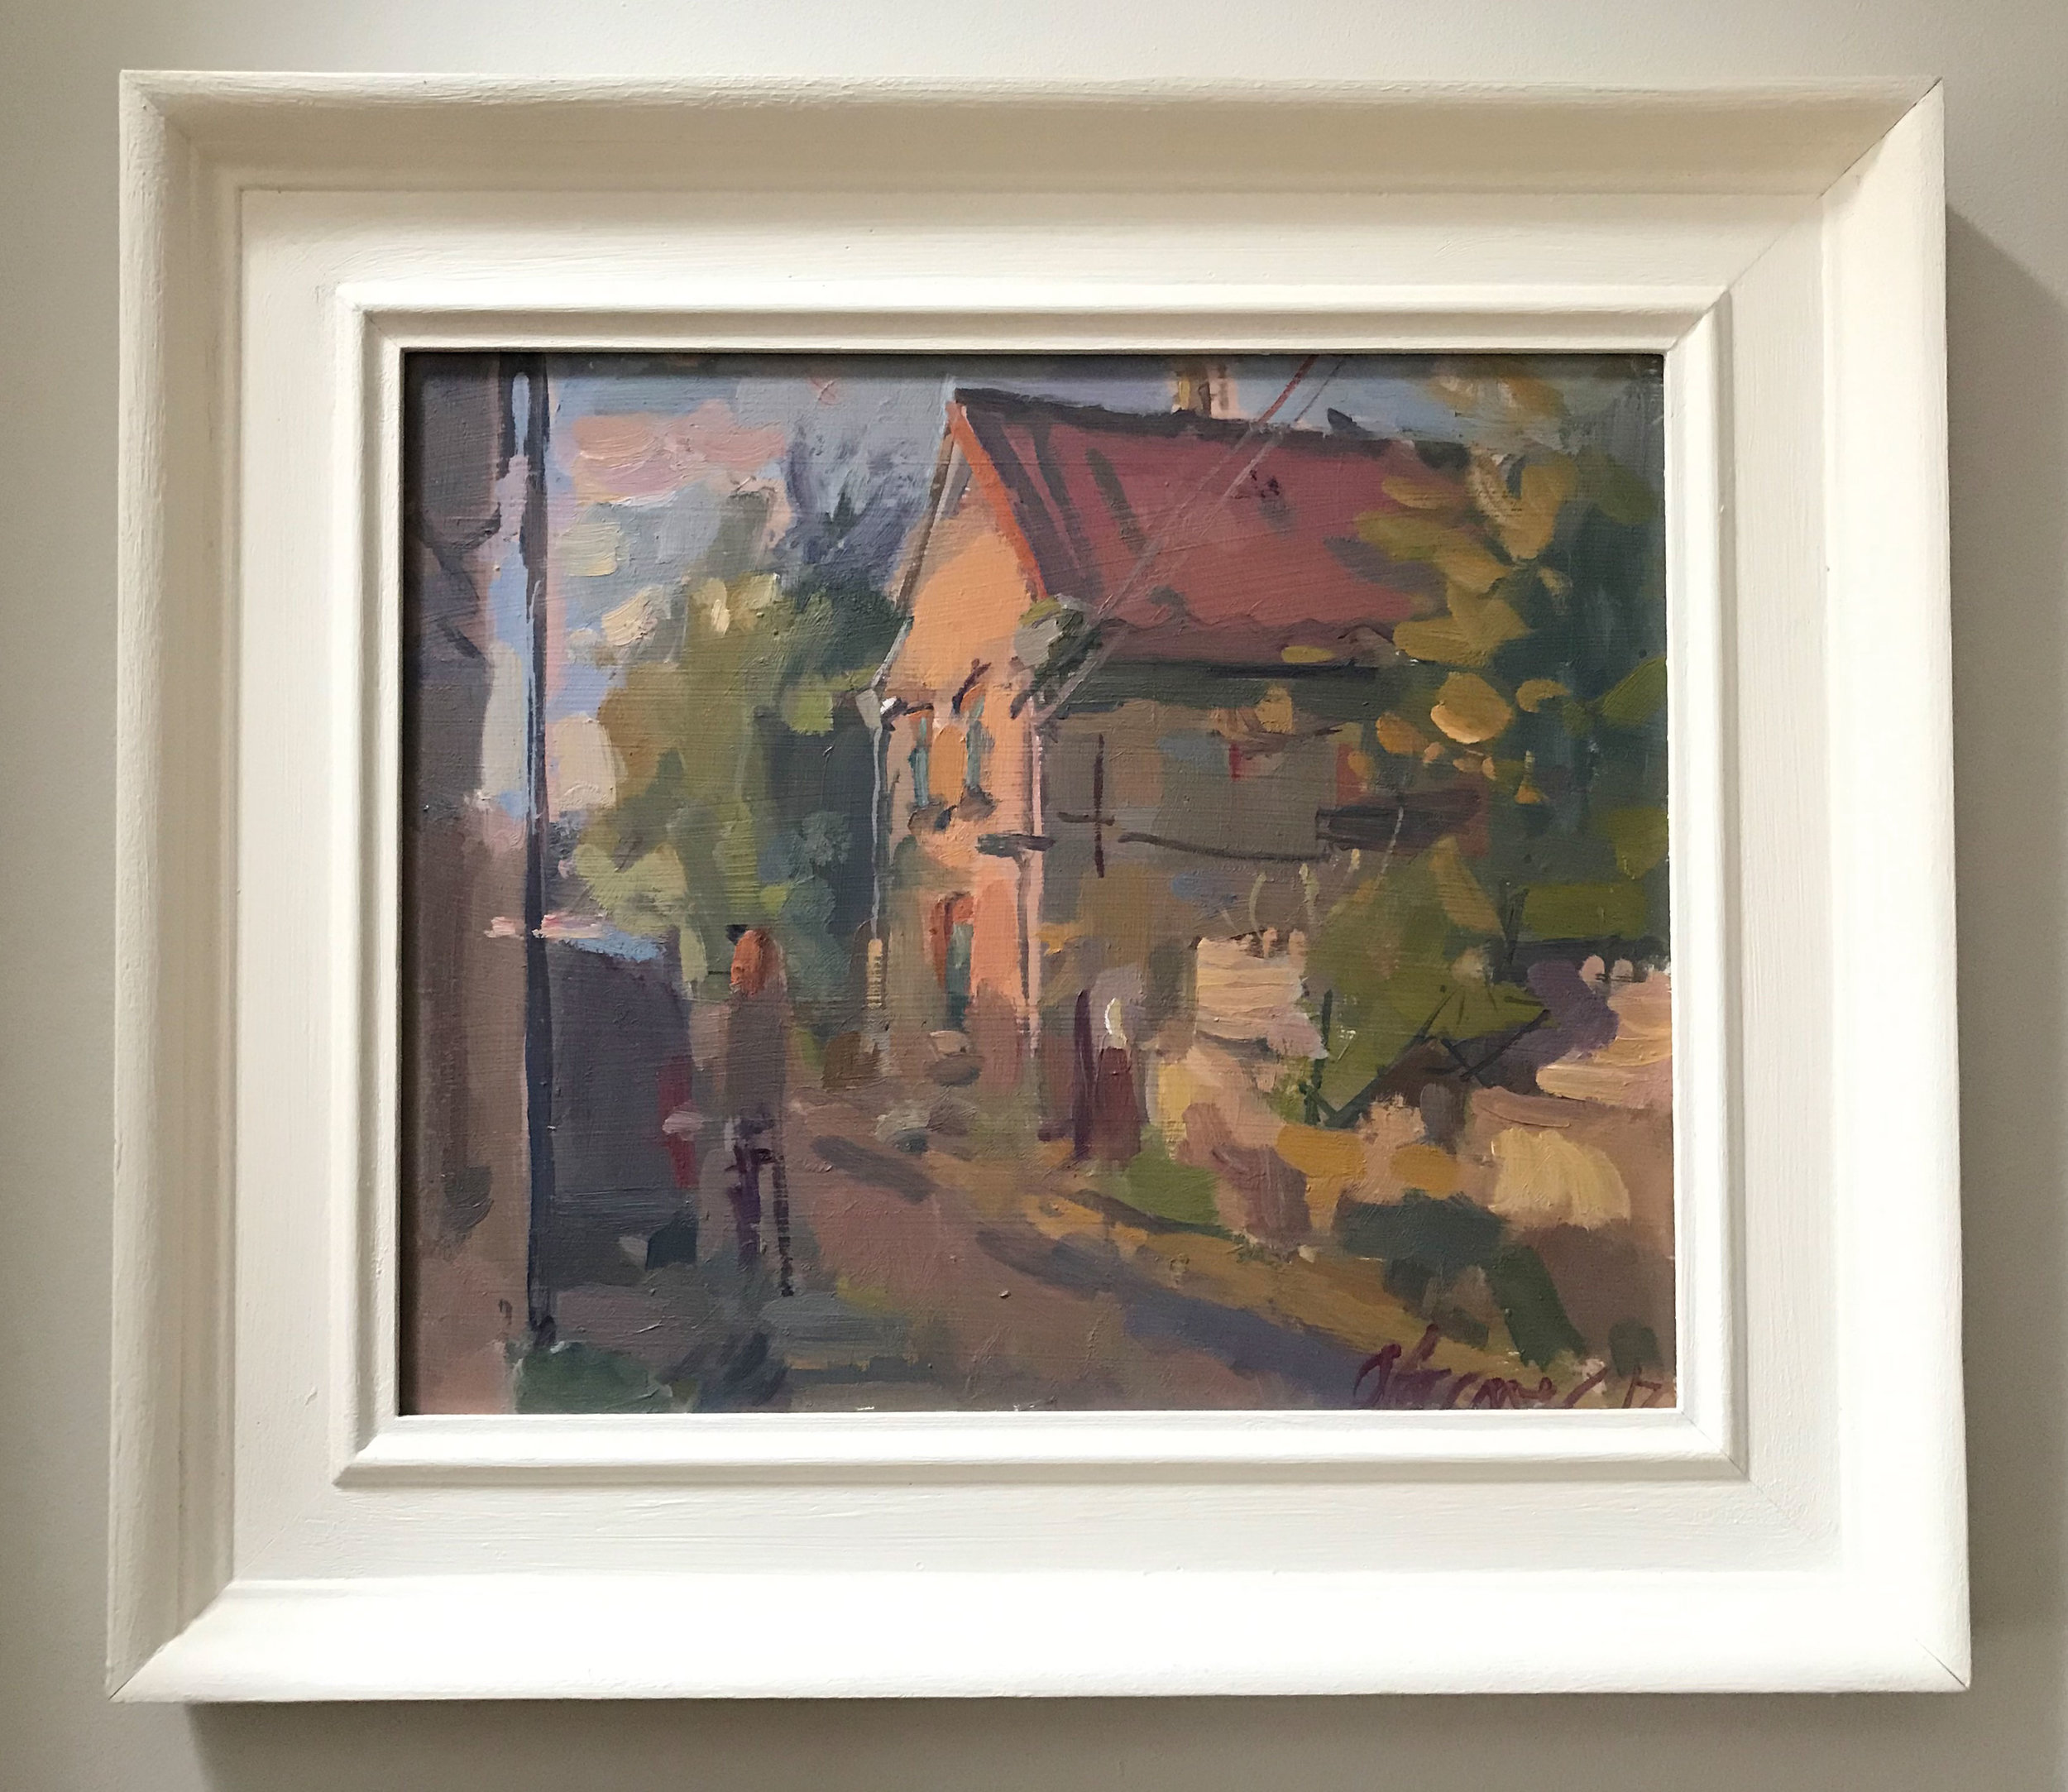 I bought Andrew Farmer's 'The old cottage' in 2017. It has a palette unique to Andrew that is present in all of his work and his signature bold brushwork – it's confident and unctuous. The light he has captured is ethereal. I don't know the location, but it's not important. It's on the wall in my living room and I feel joy and serenity every time I walk past it.   www.andrewfarmerfineart.com